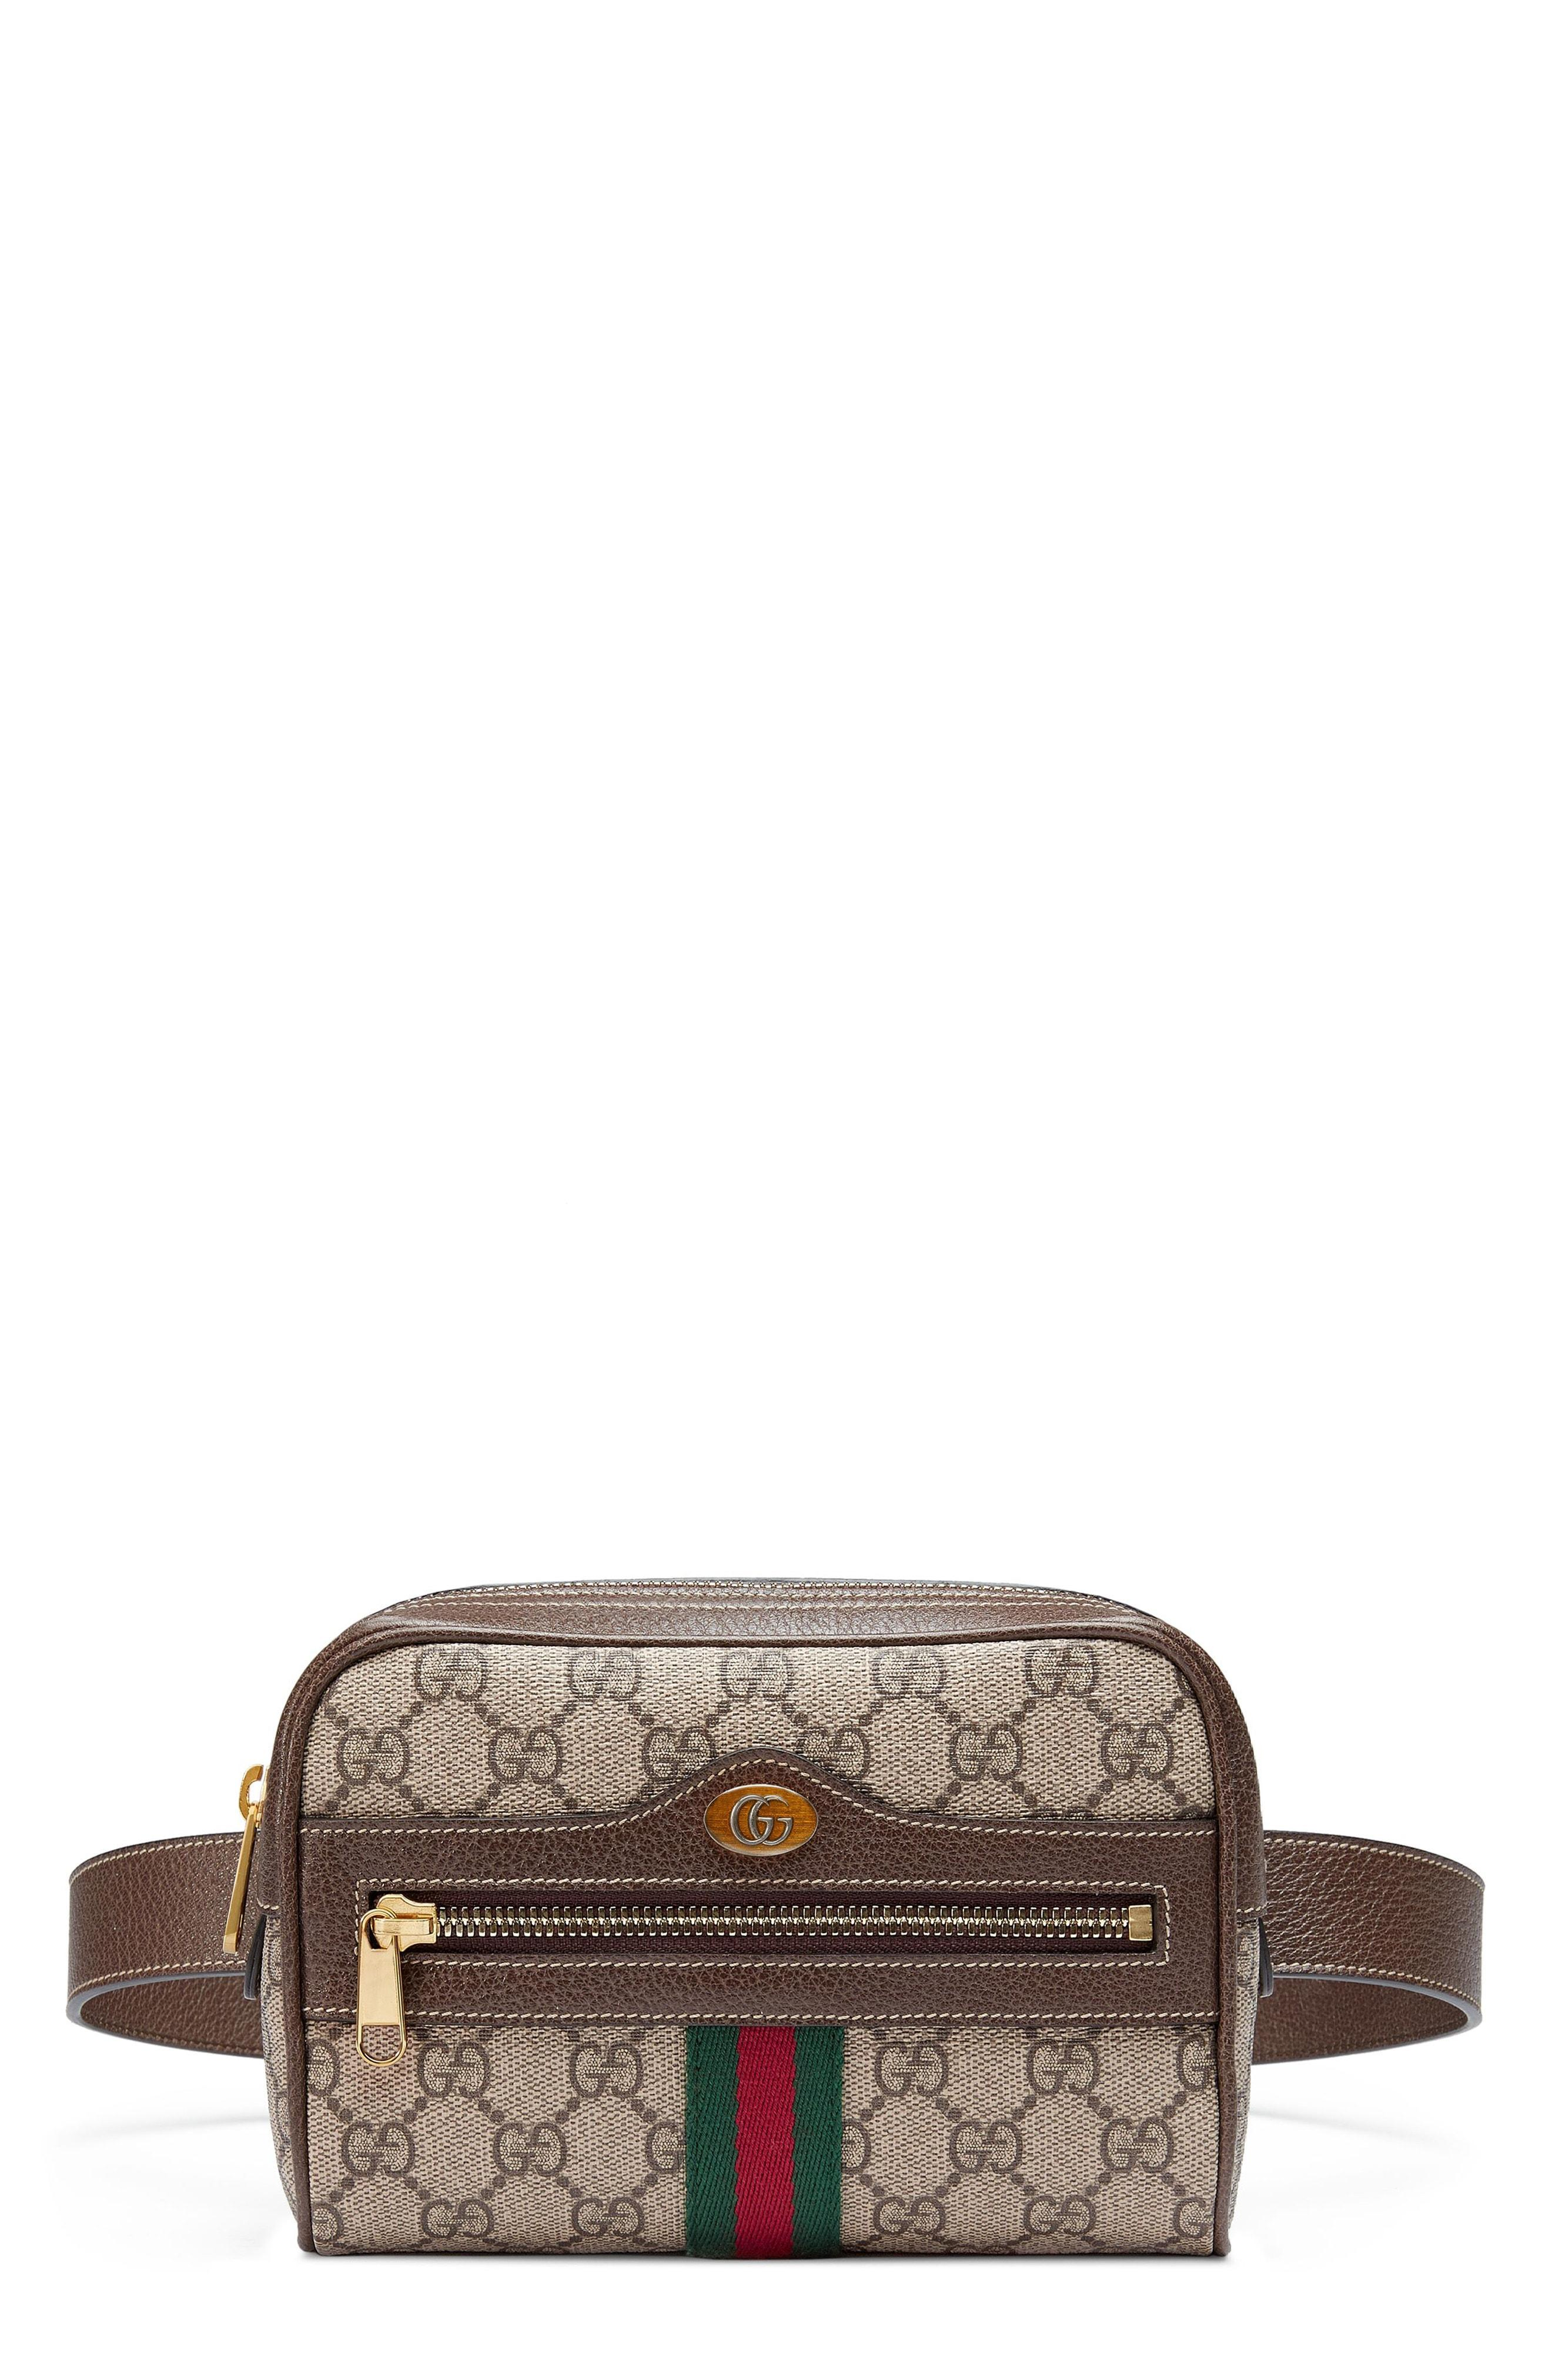 8416b4688 Gucci Ophidia Leather-Trimmed Printed Coated-Canvas Shoulder Bag In ...